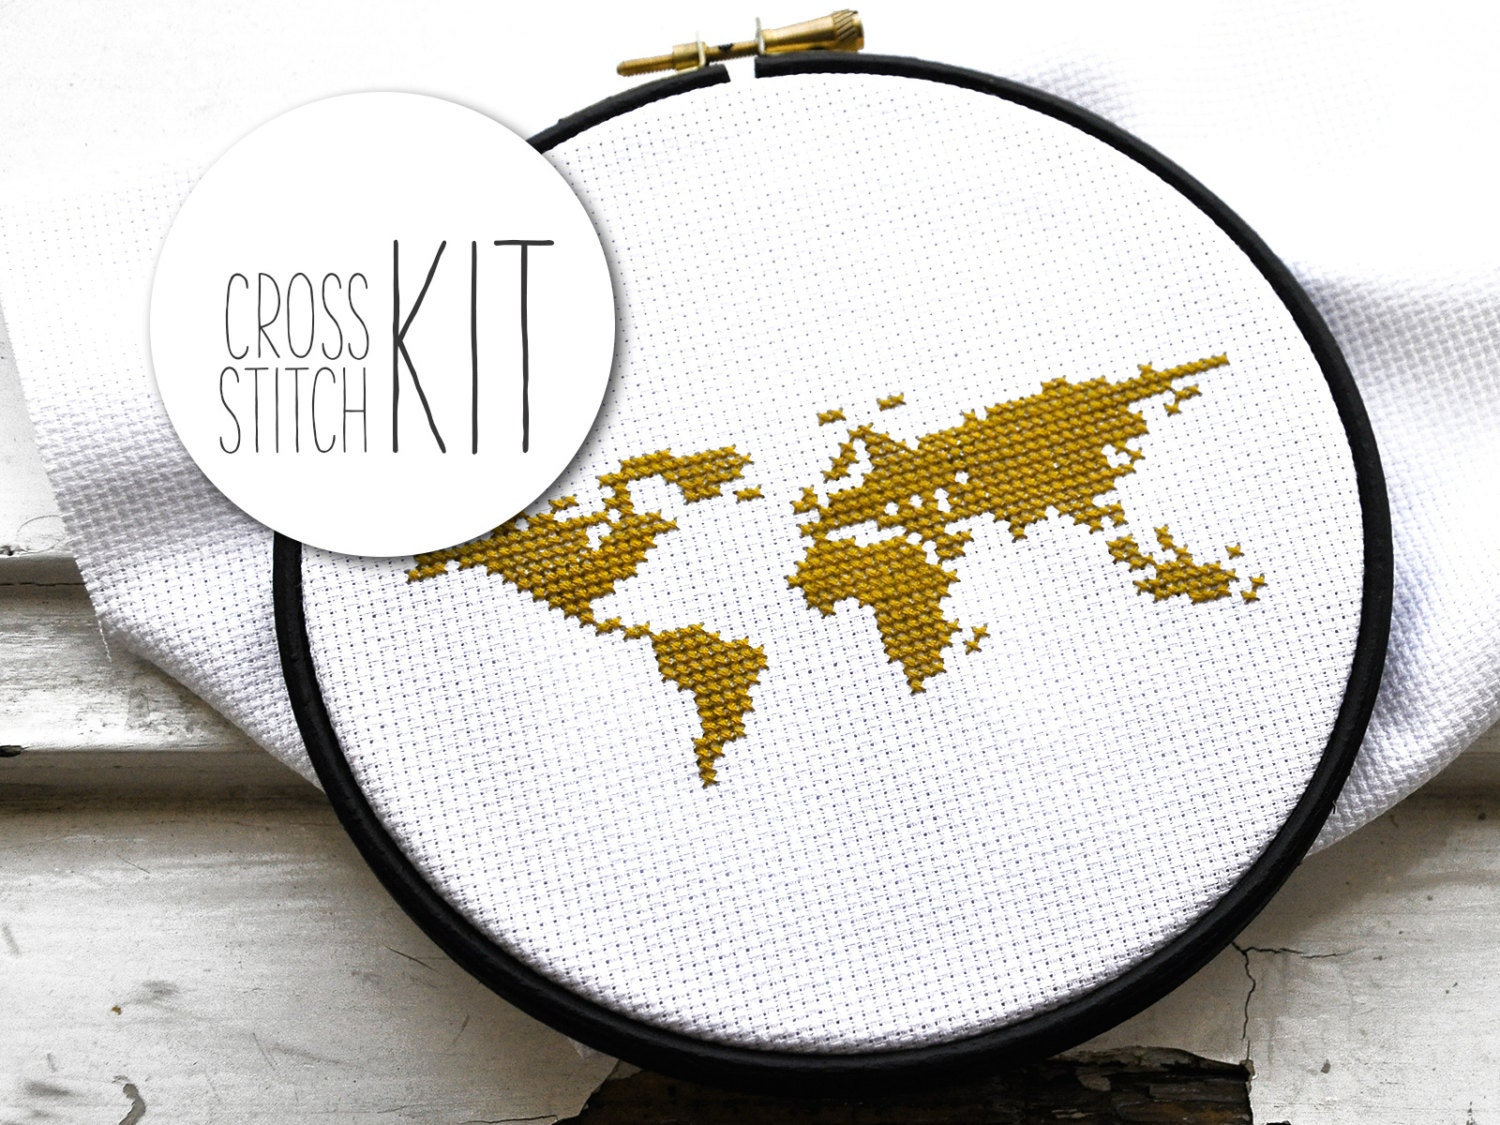 World Map  Easy Cross Stitch Kit For Beginners, Wanderlustplete Craft  Kit With Supplies